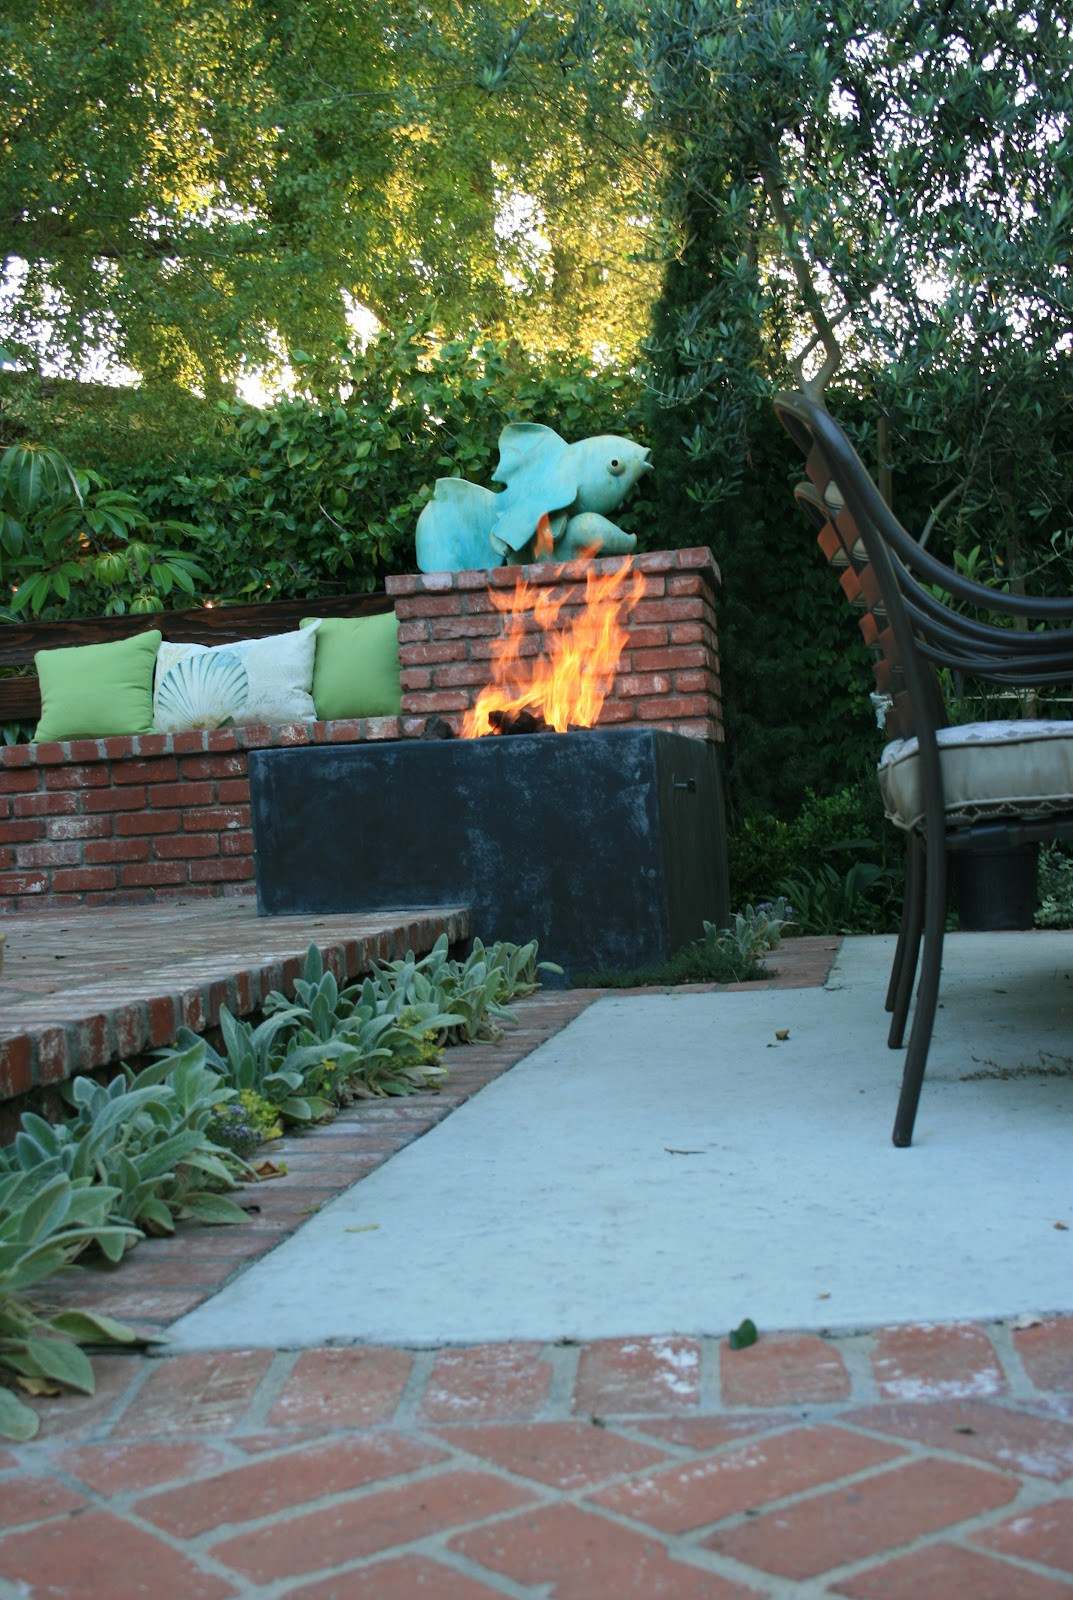 Best ideas about Backyard Fire Pit . Save or Pin ciao newport beach a backyard fire pit Now.